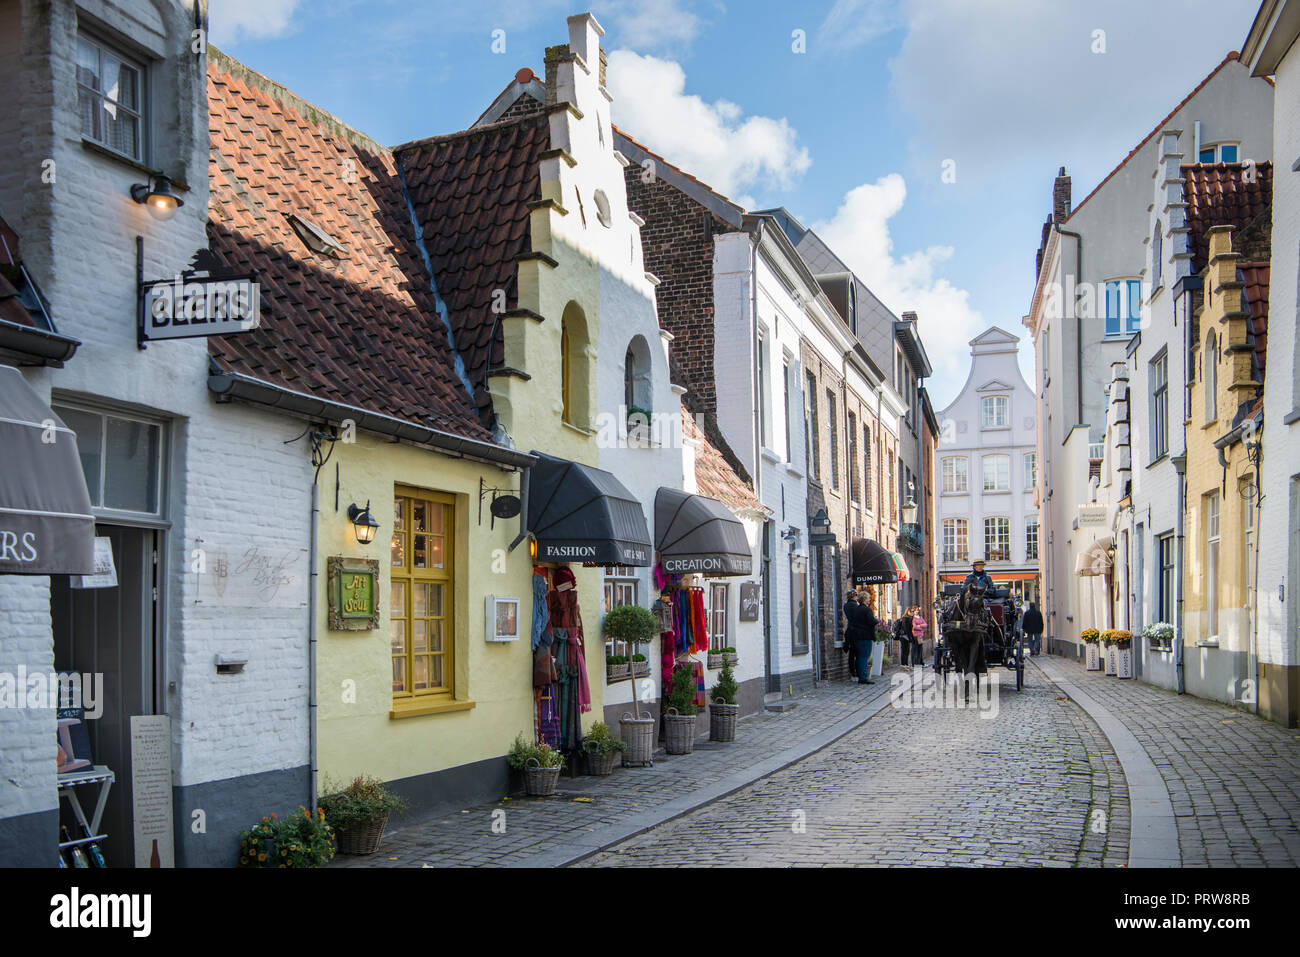 Streets of Brugge - Stock Image